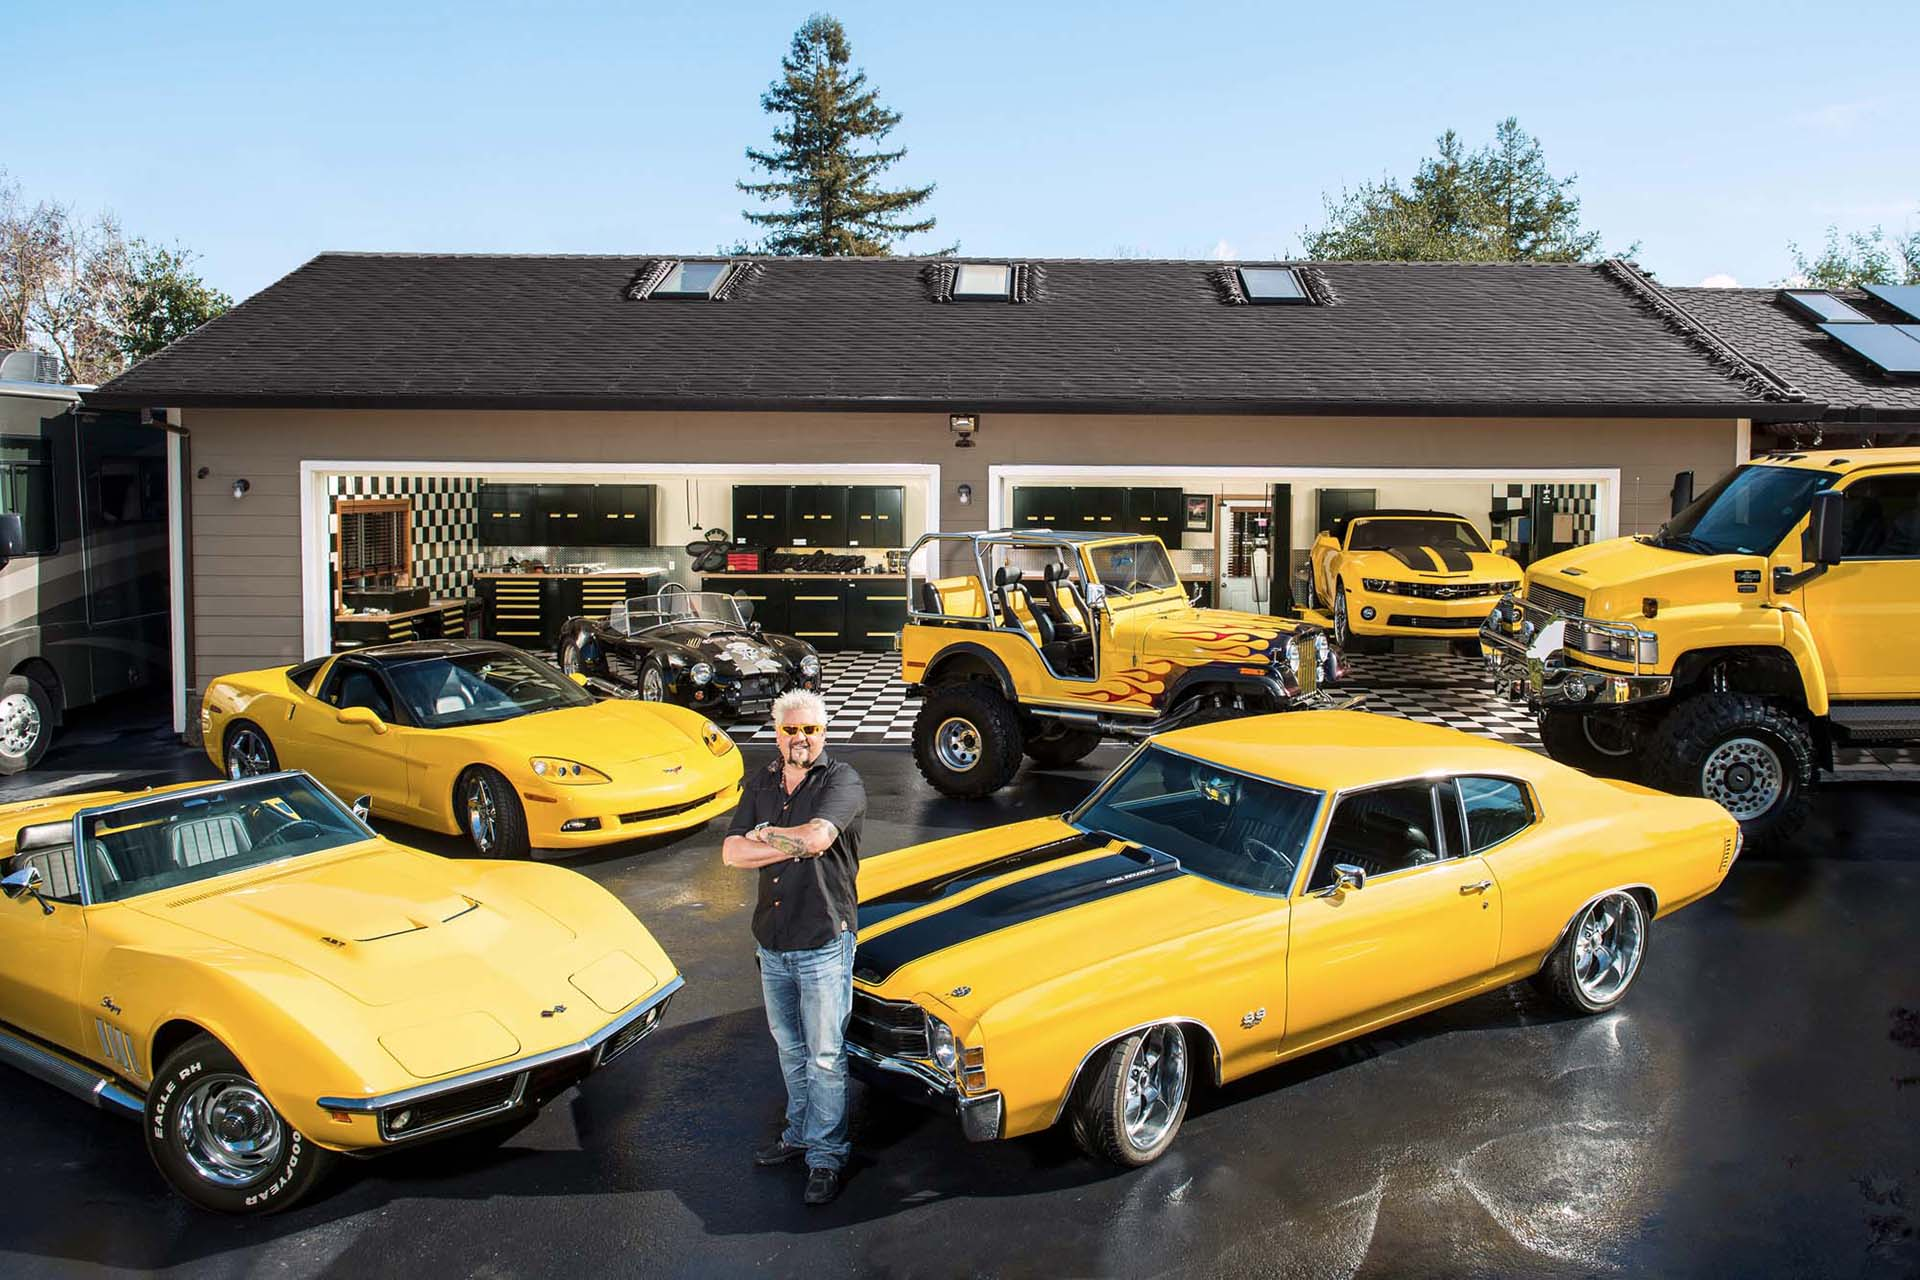 The flamboyant Fieri favours yellow automobiles, including a Camaro, Corvette, and a Lamborghini Gallardo. Incredibly, a few years ago, his Gallardo was stolen from a dealership by a 16-year-old, who was later sentenced to life in jail for other crimes.